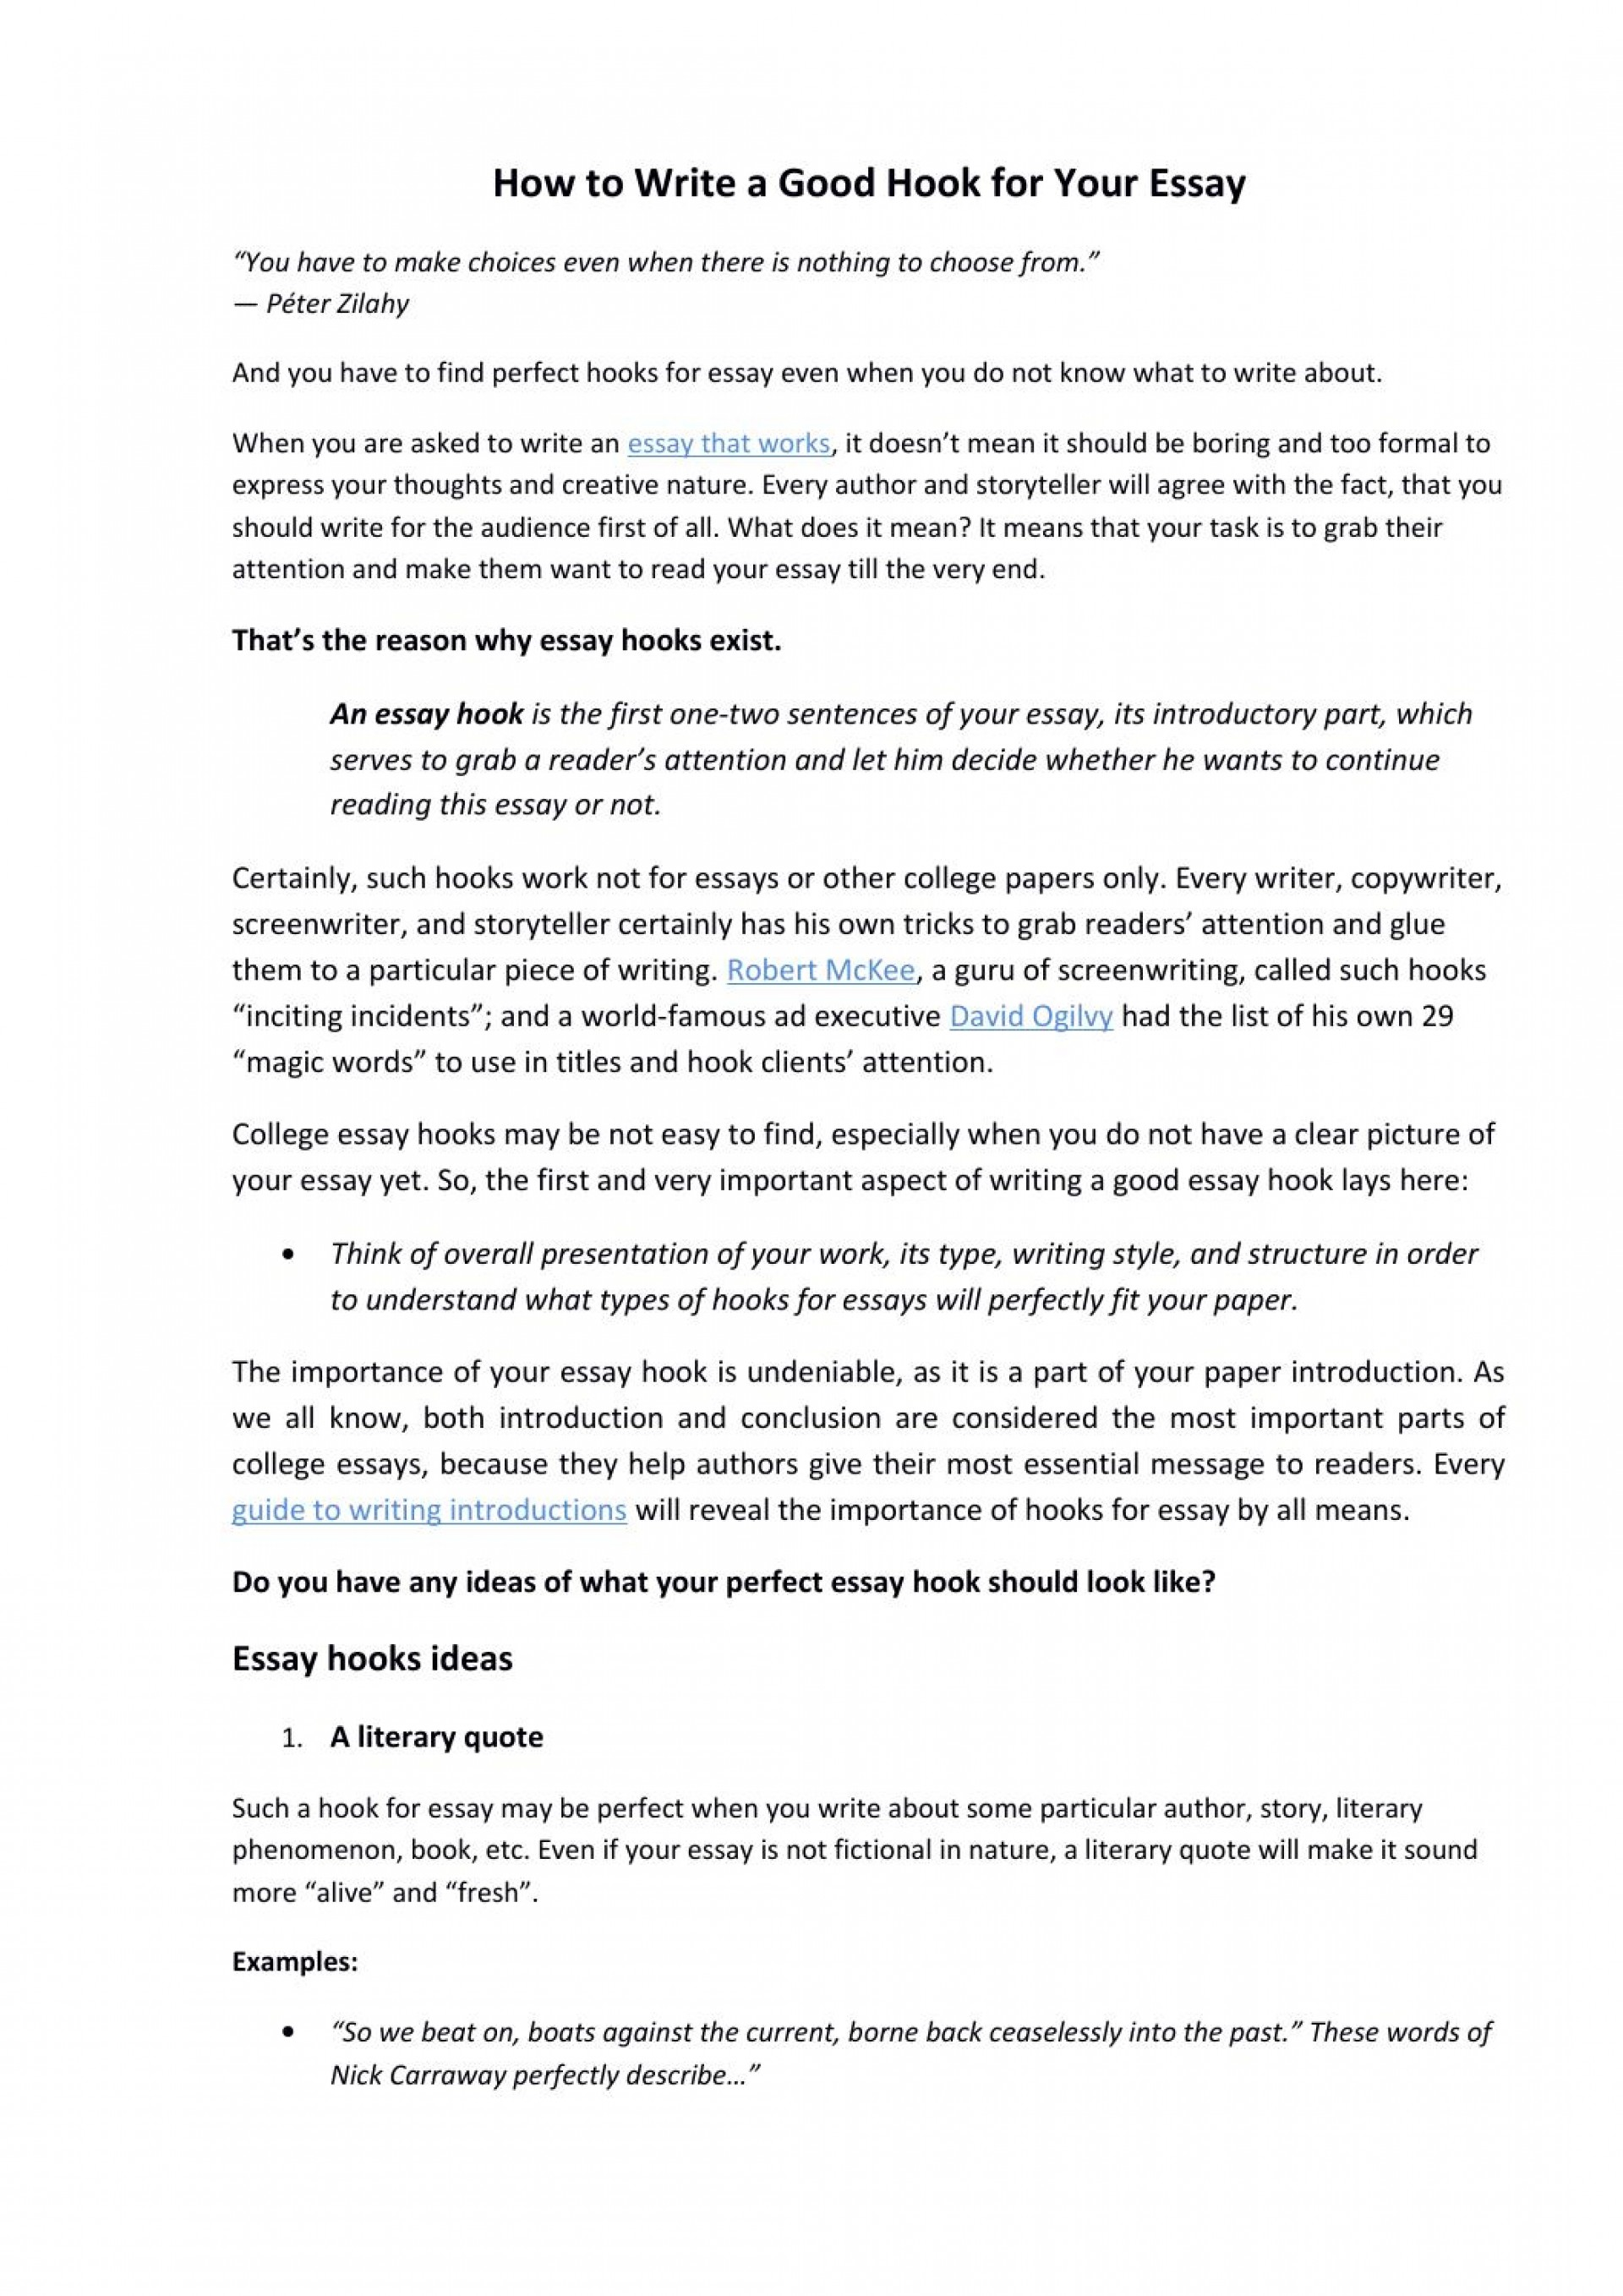 007 Page 1 Essay Example How To Make Good Hook For Outstanding A An Catchy Narrative Great 1920